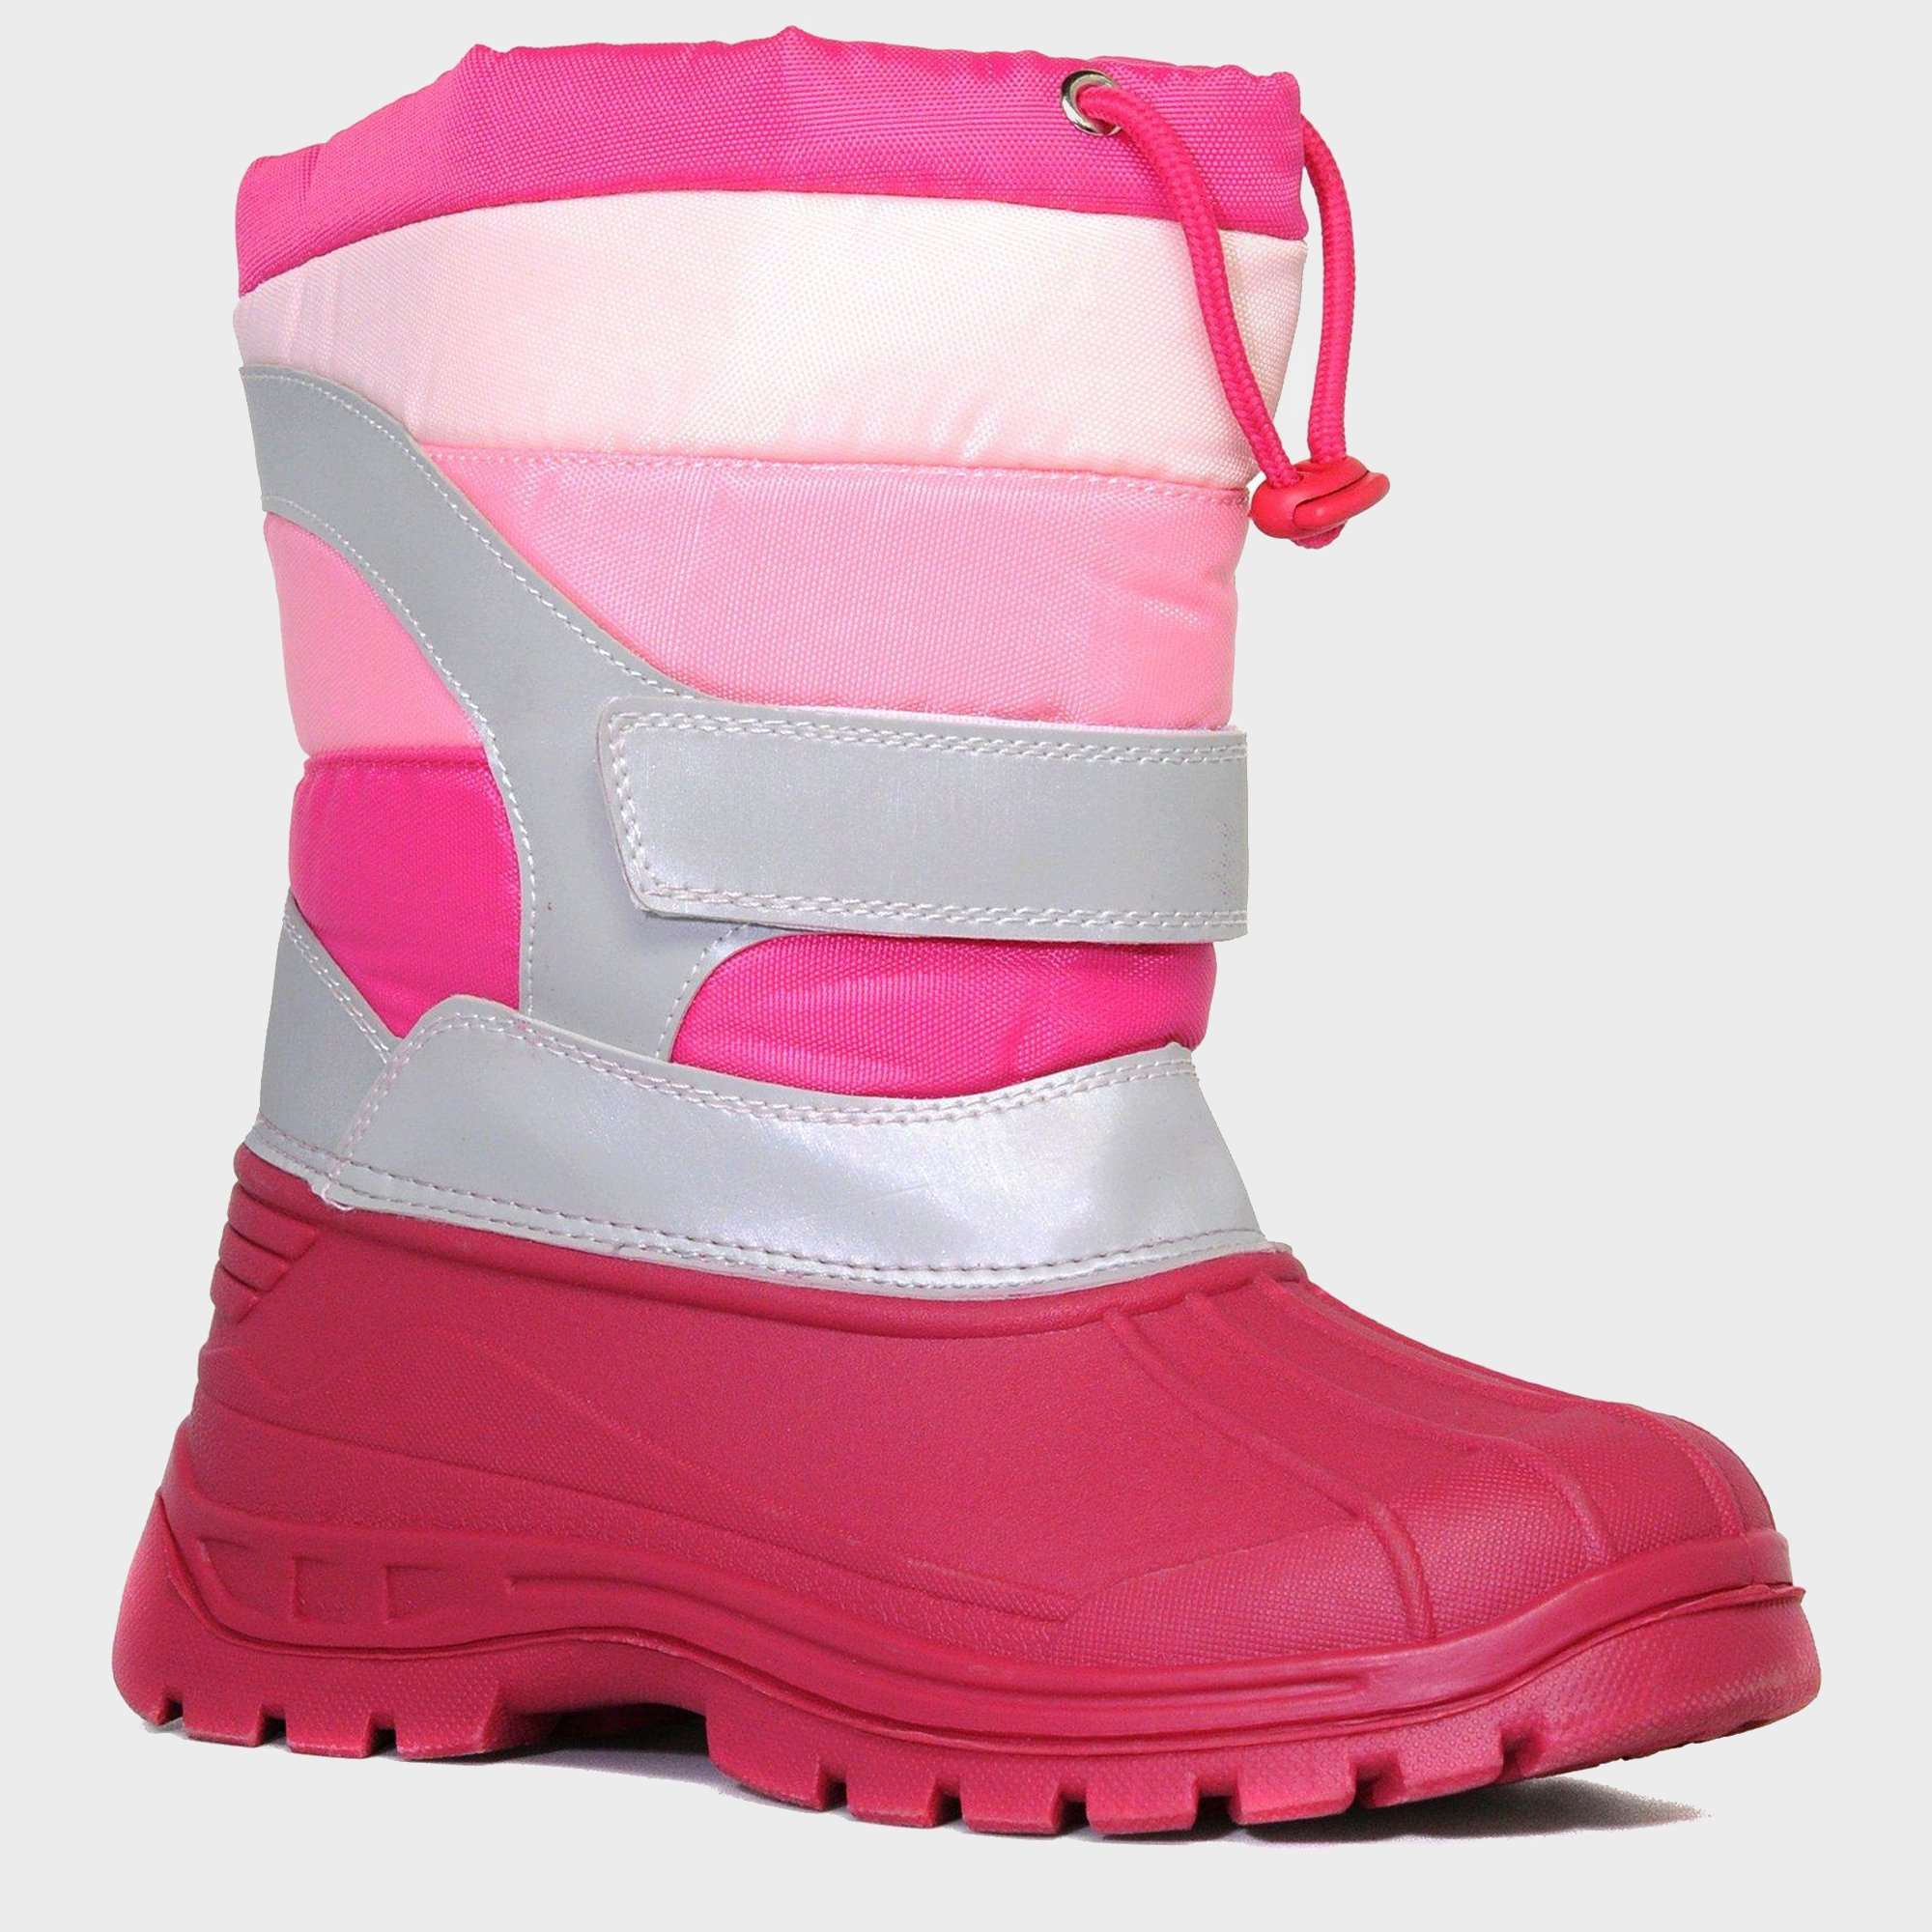 ALPINE Girls' Duck Snow Boots